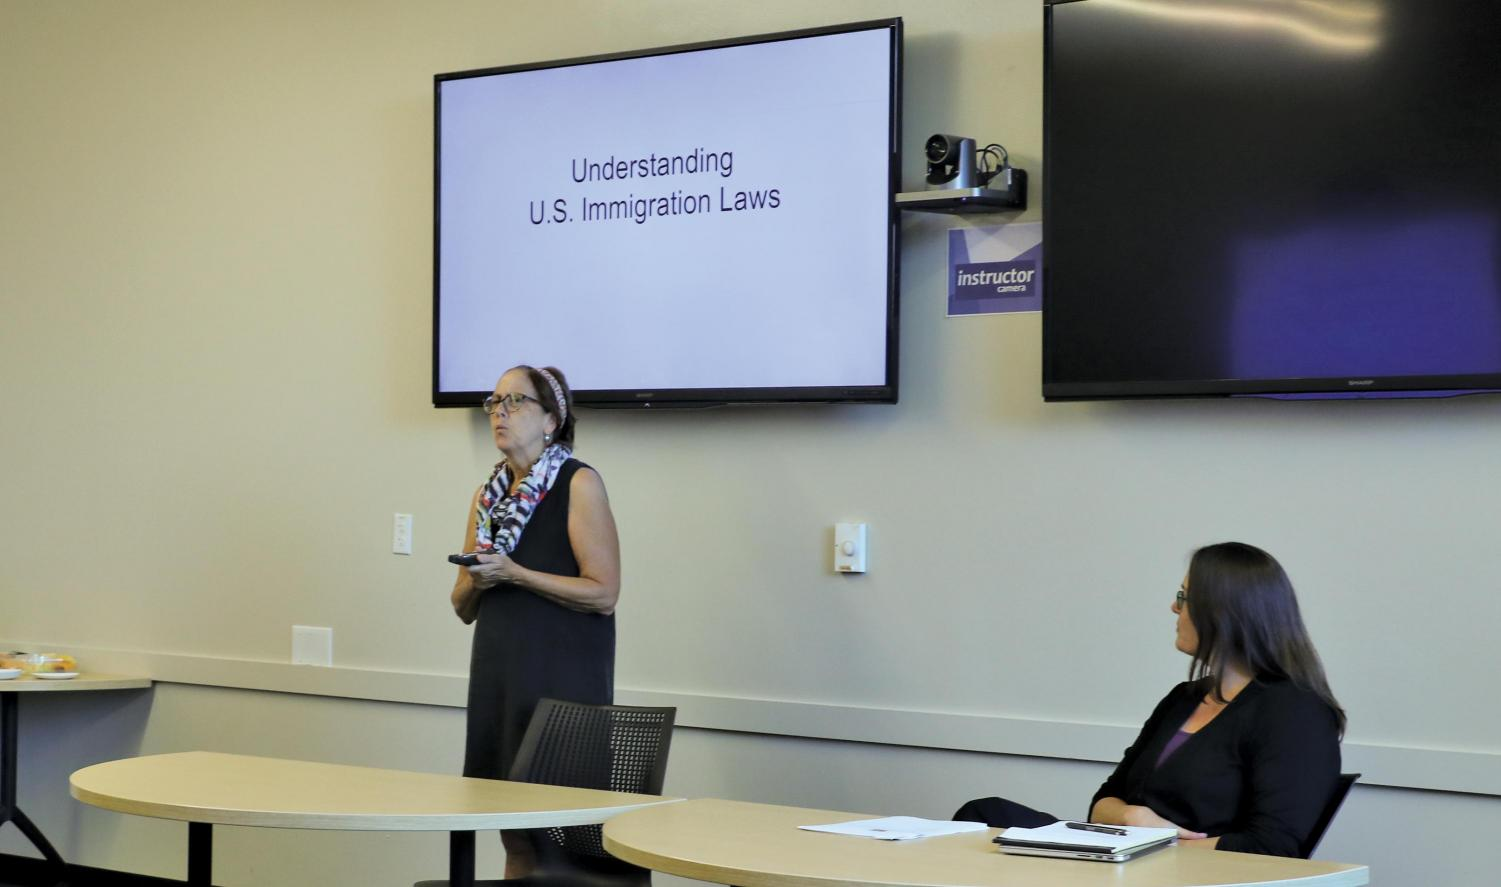 Sarah Woelk of Casa Marianella speaks about U.S. immigration laws. Woelk has been a part of the legal clinic staff at Casa since 2011.